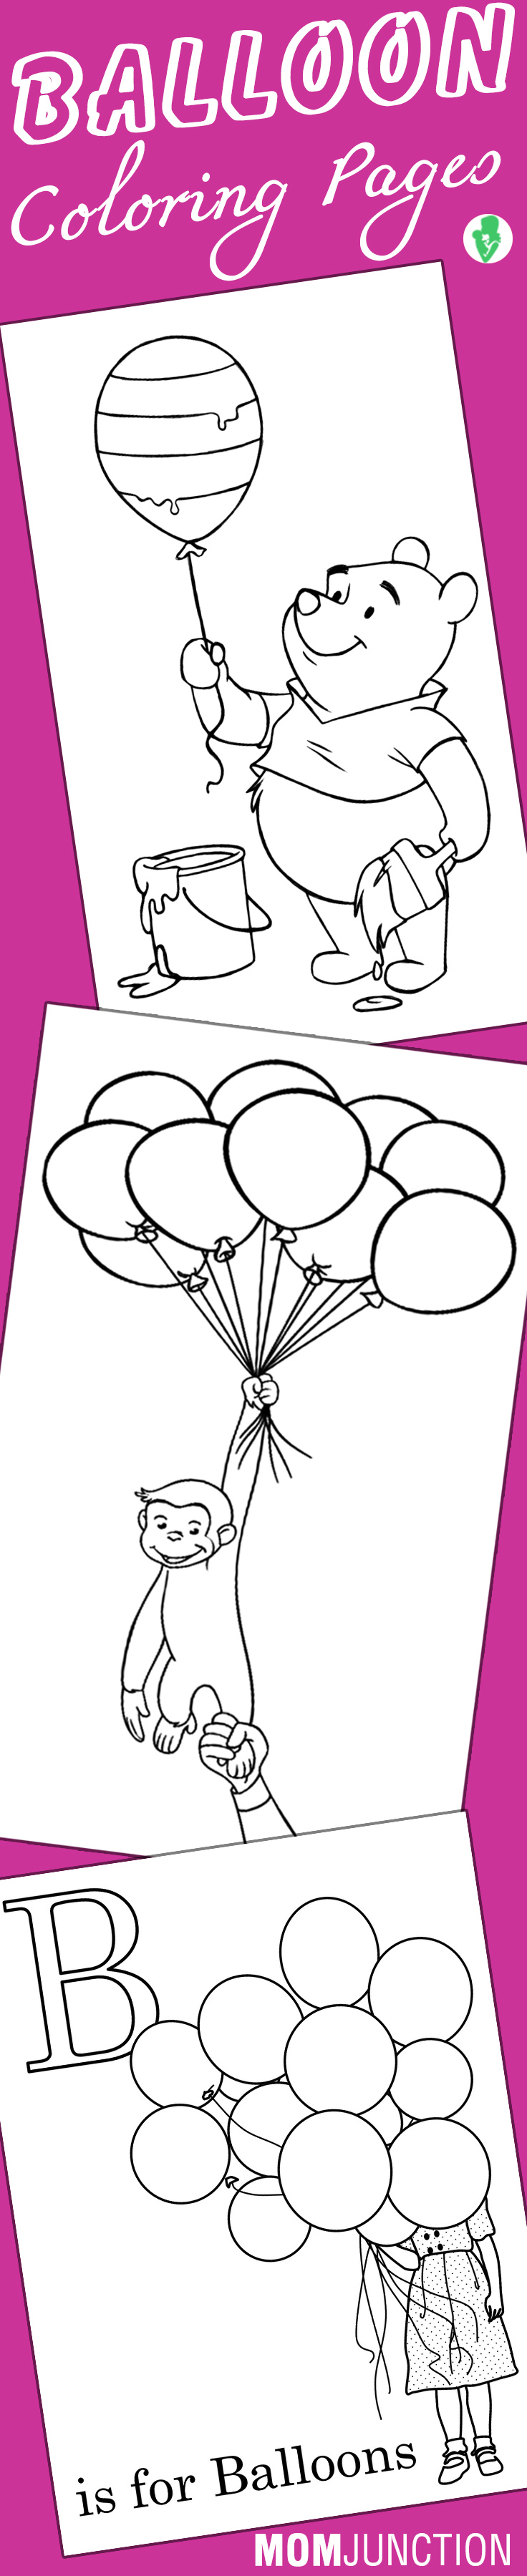 Balloon Coloring Pages For Toddlers Coloring Printable Coloring